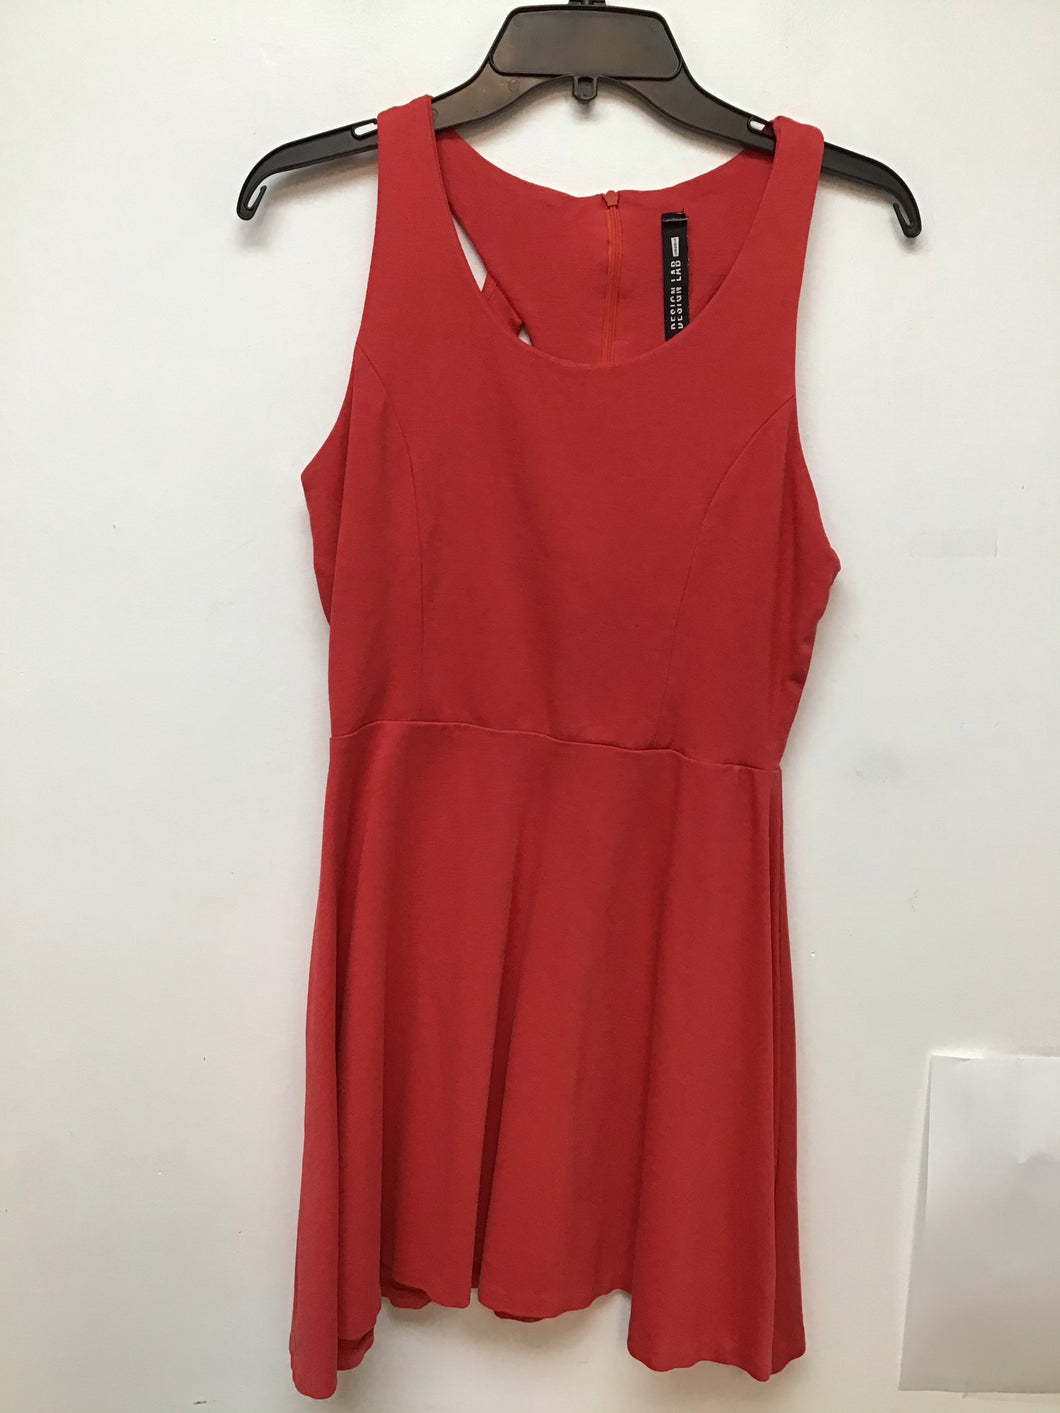 Design lab coral color sleeveless dress size large